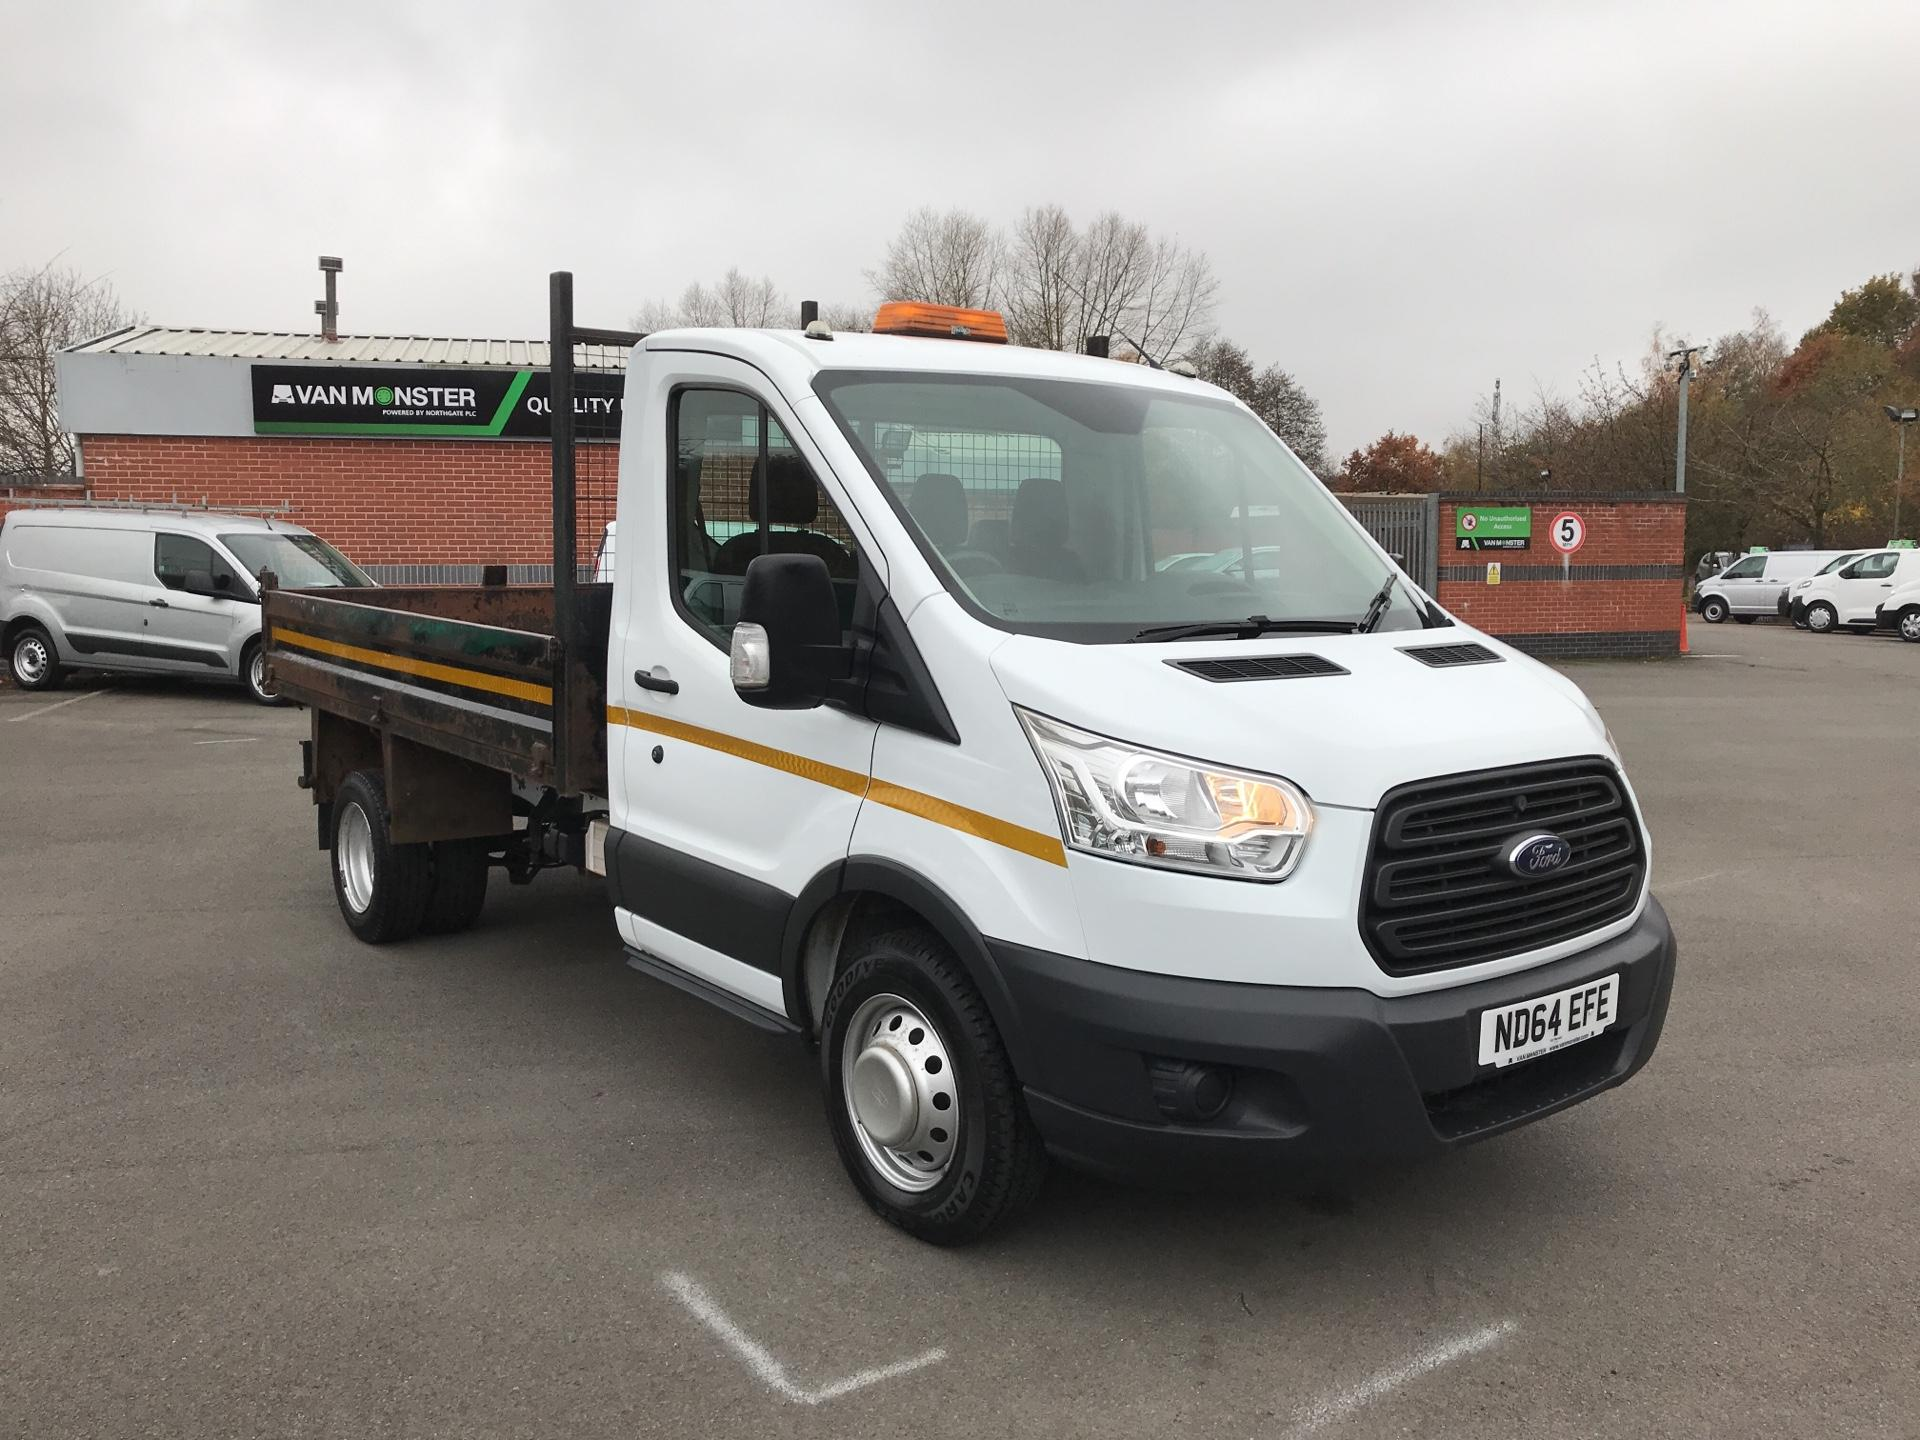 2015 Ford Transit 2.2 Tdci 125Ps single cab tipper *please note this is a value van and the condition is reflected in the price* (ND64EFE)